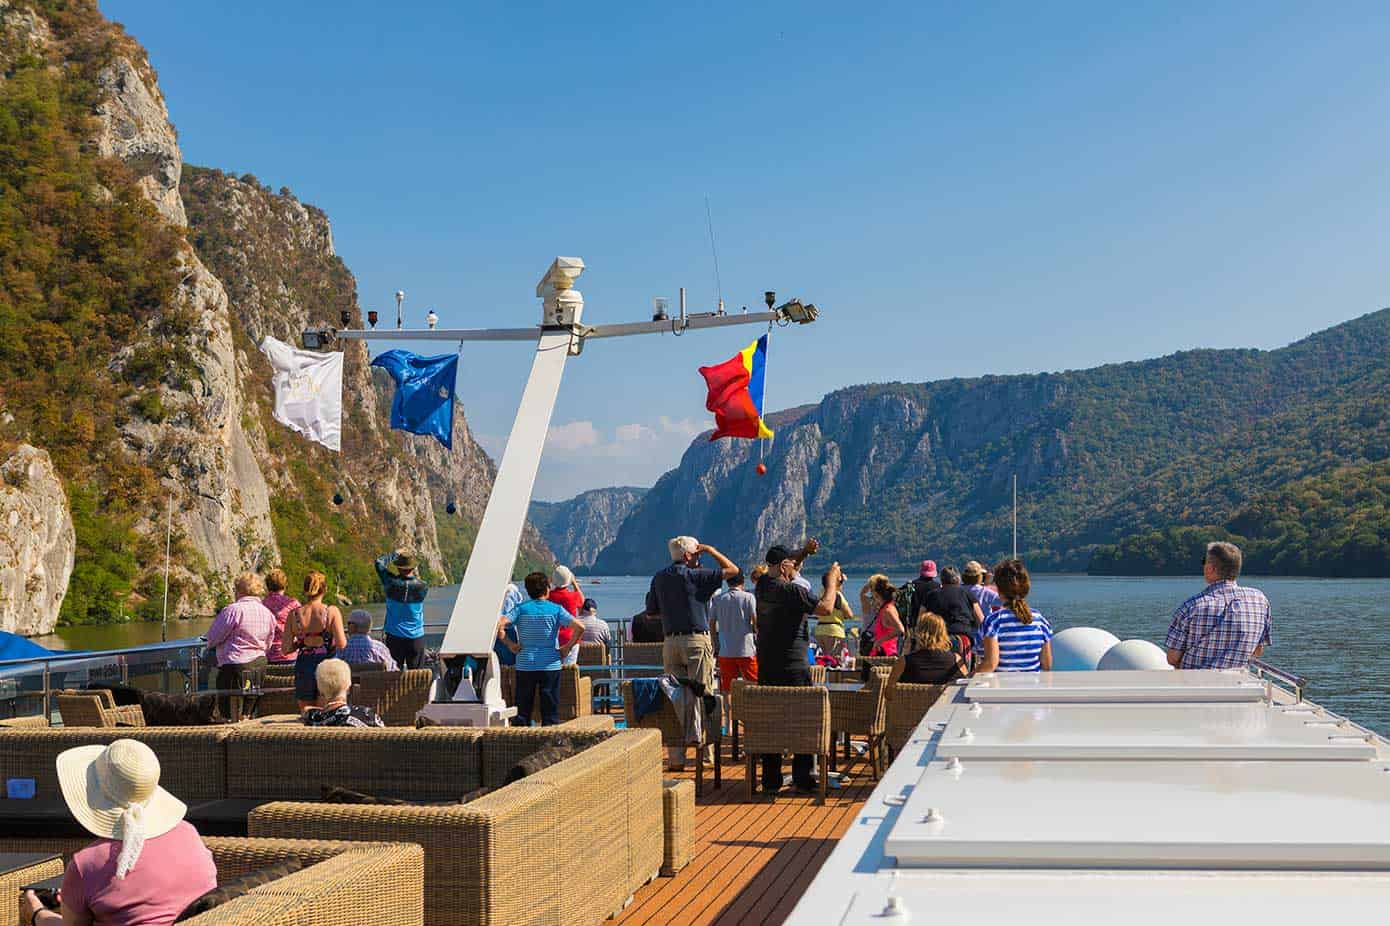 People on a river cruise ship taking pictures of large the Iron Gates gorge on the Danube River.